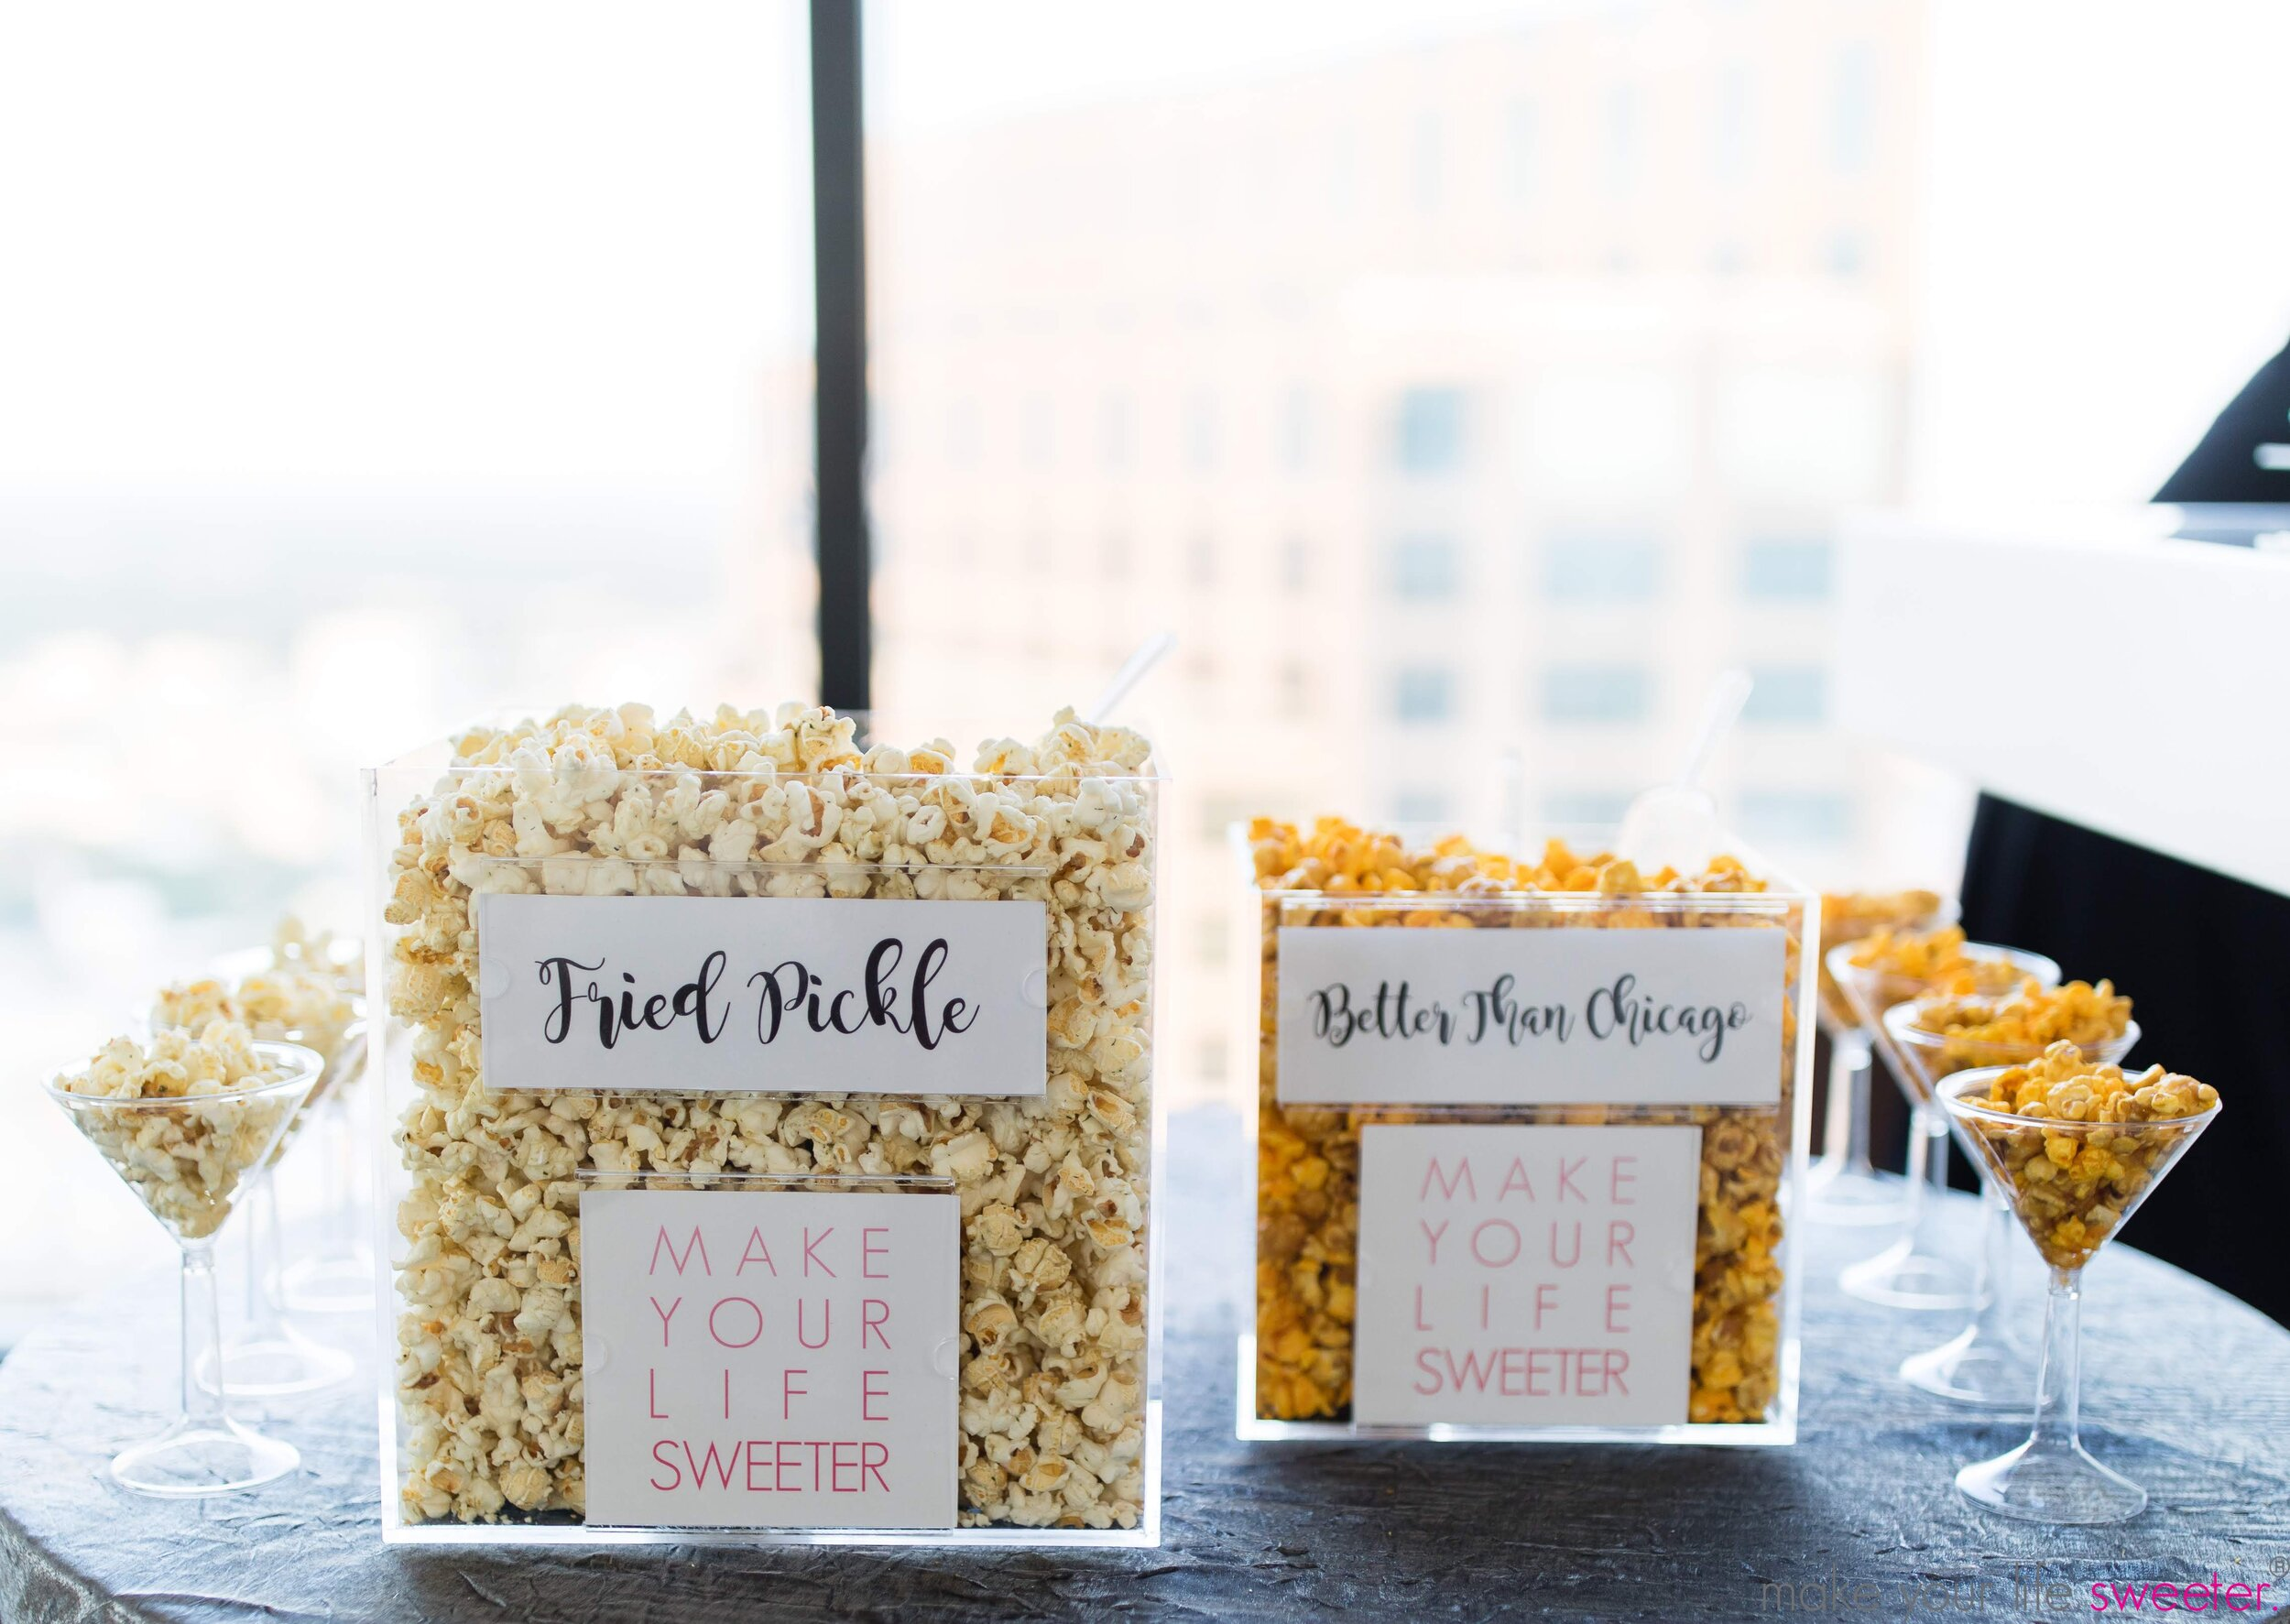 Make Your Life Sweeter Events - Tower Club Grand Opening: HotPoppin Gourmet Popcorn Bar